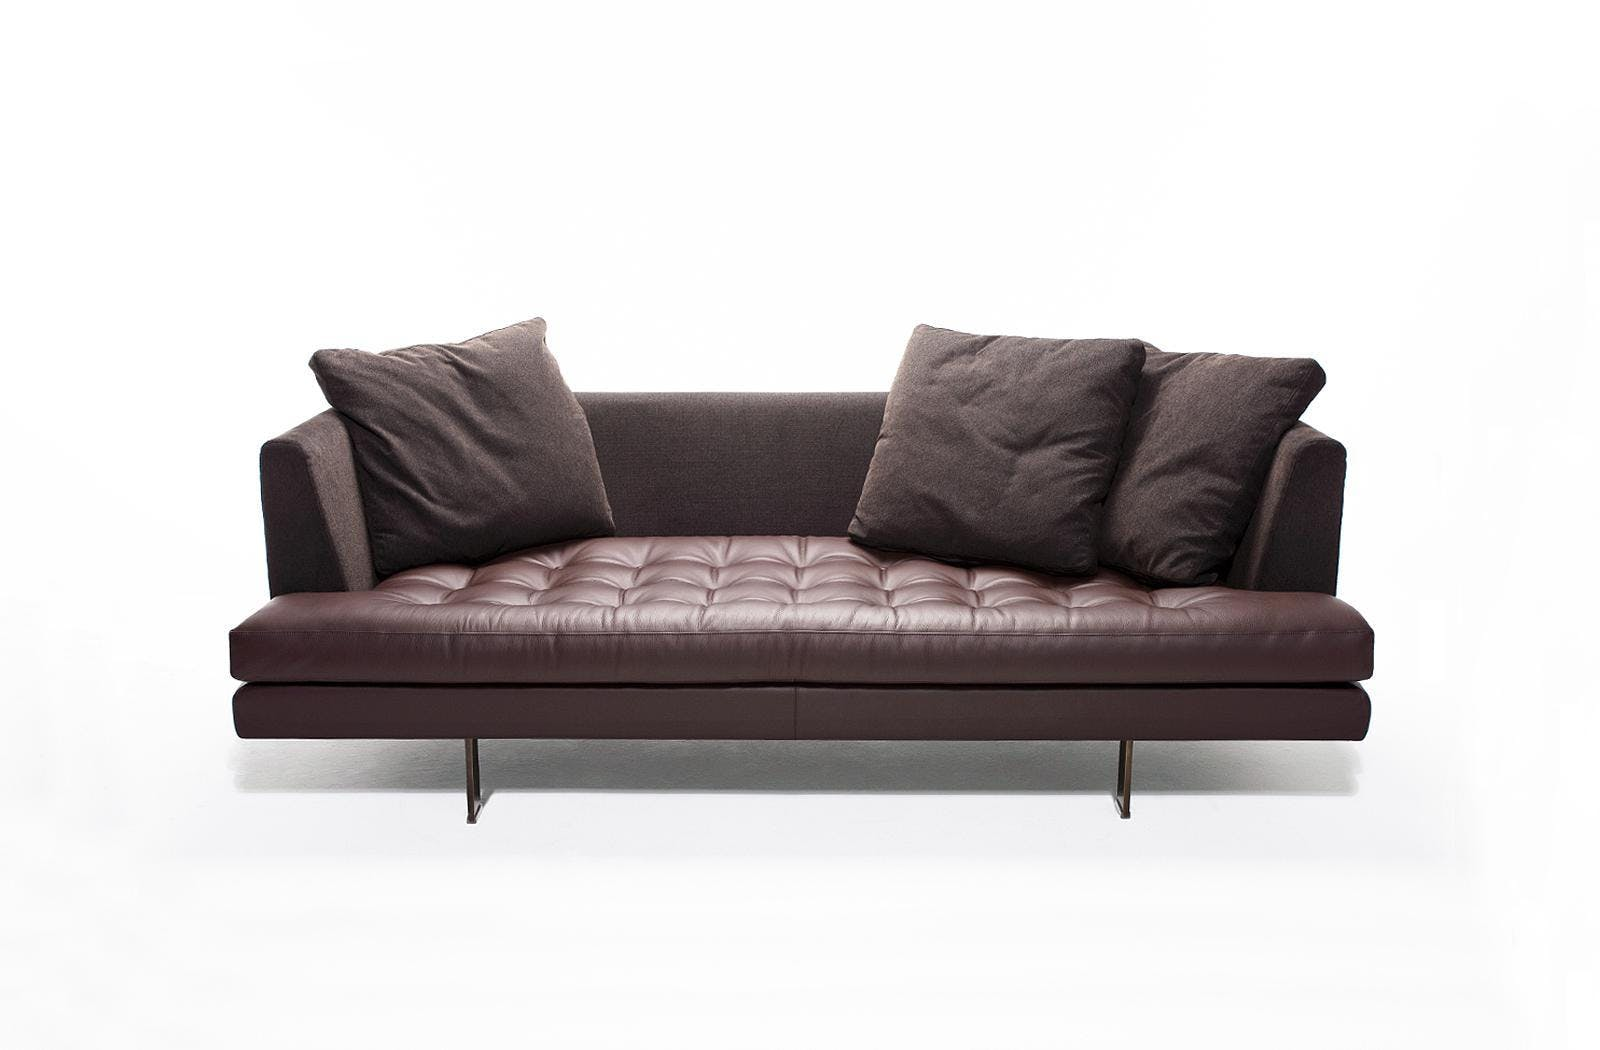 Bensen Brown Leather Edward Sofa Front